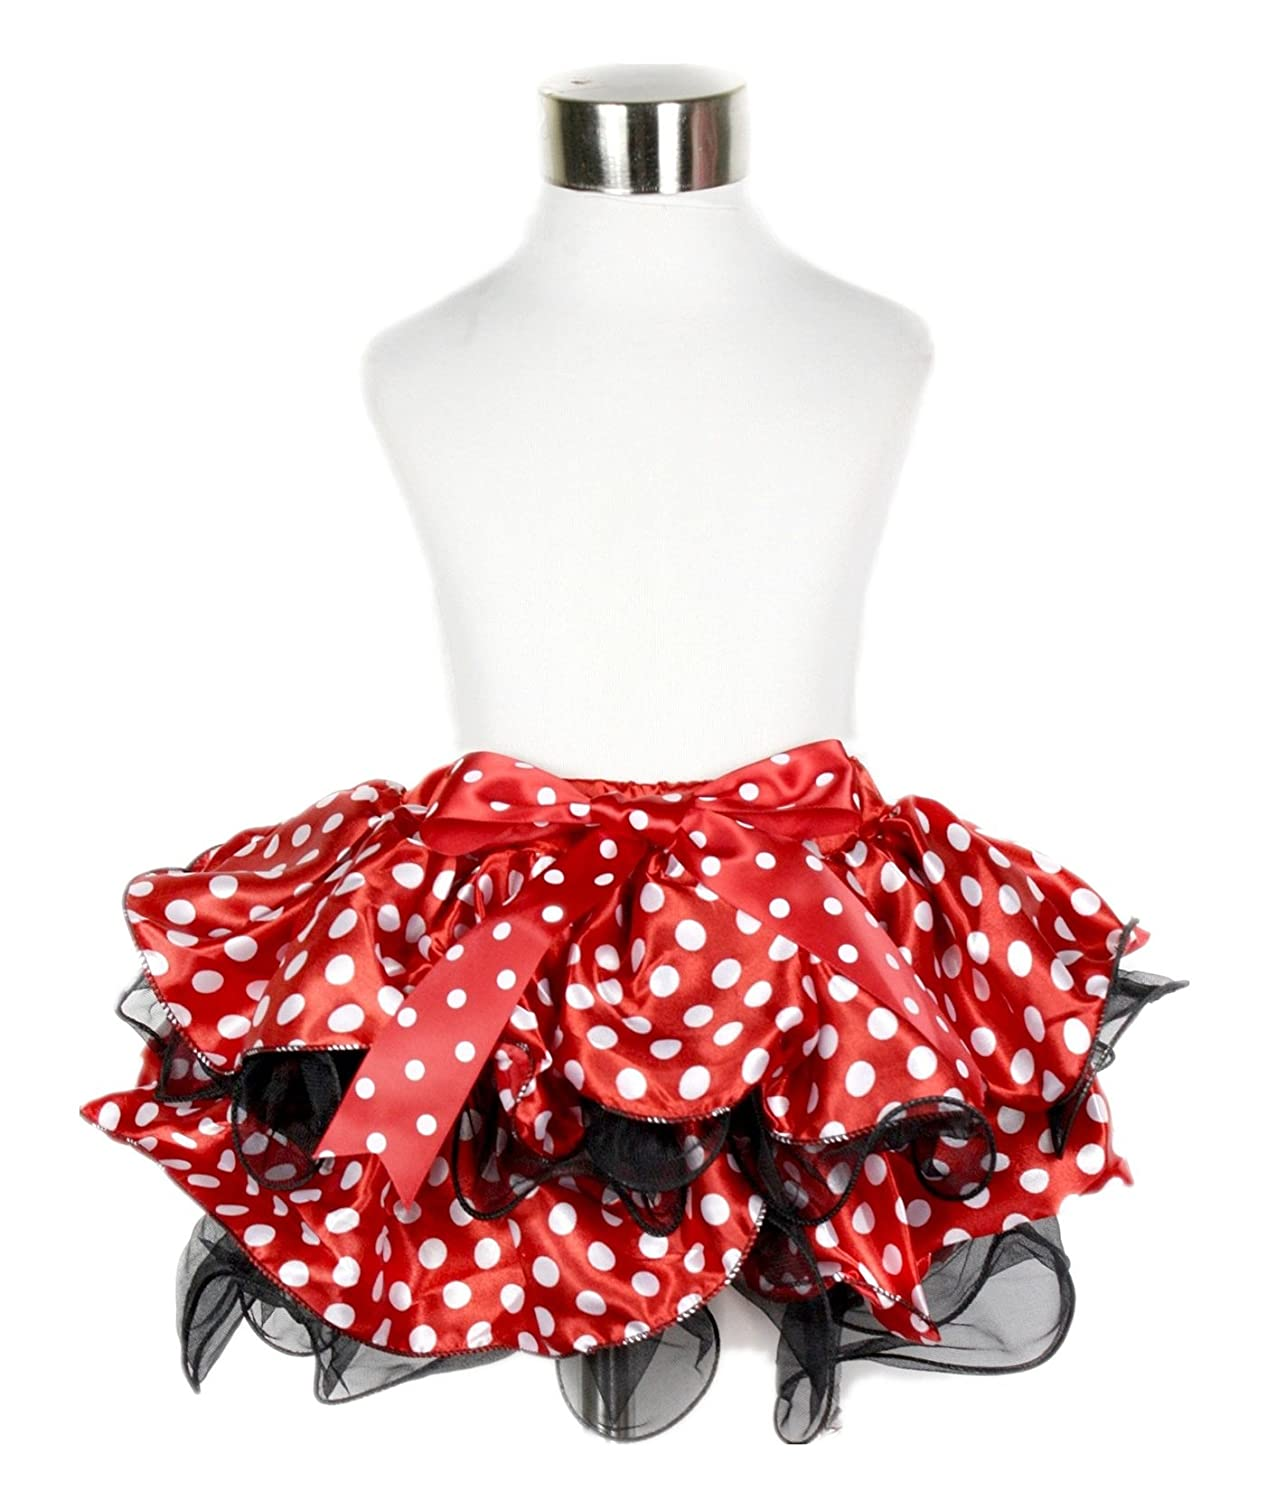 And extremely cute for little girls too!  Red Black Polka Dot 4 Layer Petal Skirt Tutu Girl Clothing Nb-8y